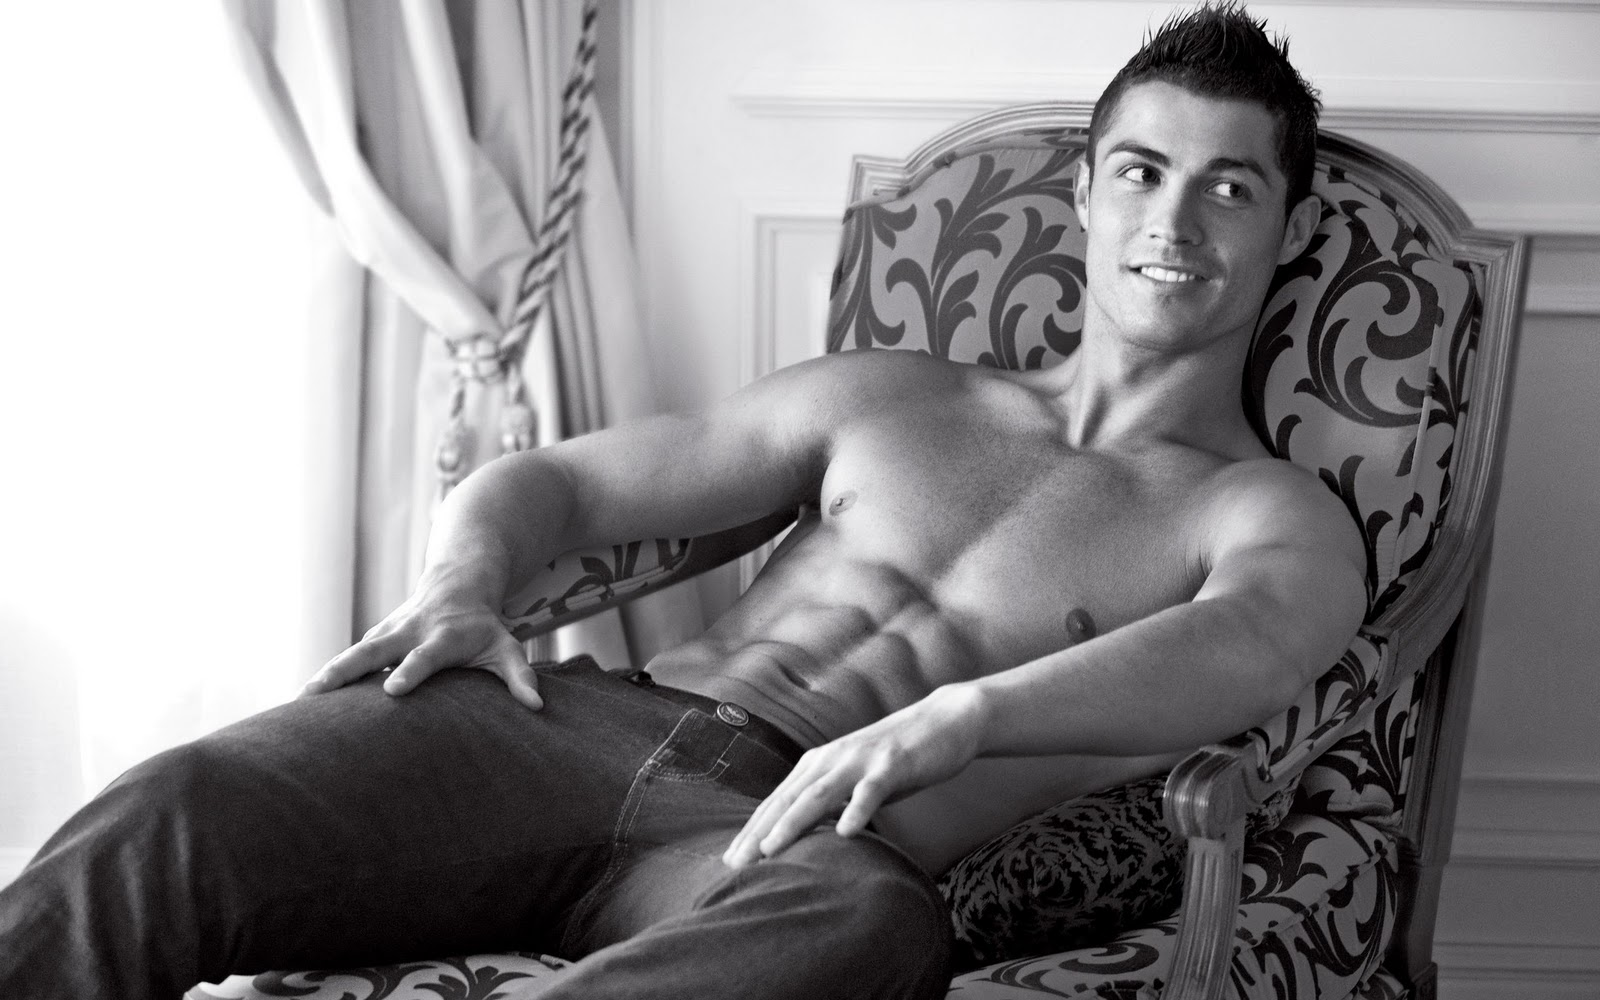 sexy-man-football-player-cristiano-ronal